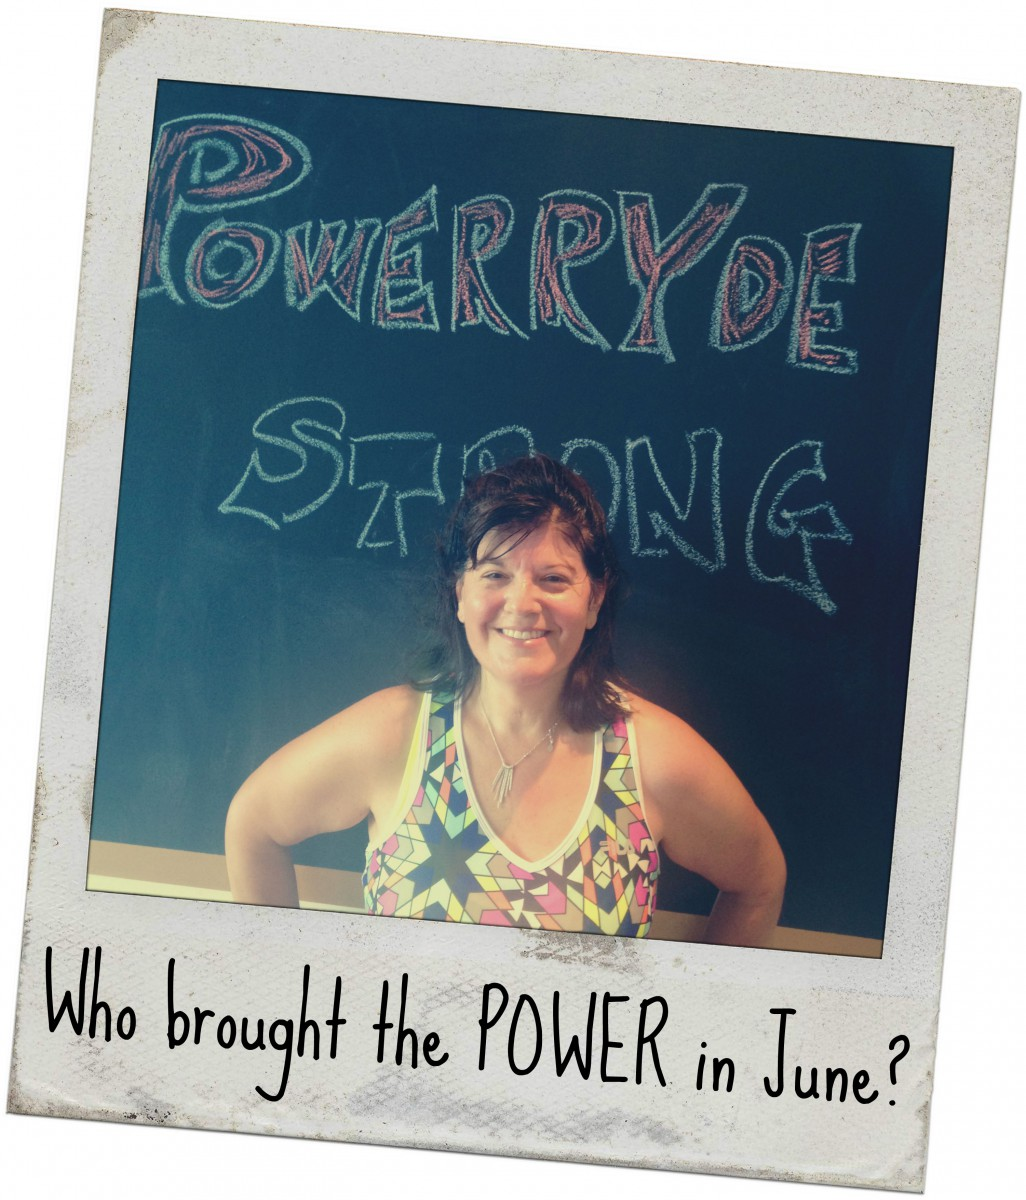 Who Brought the Power in June?